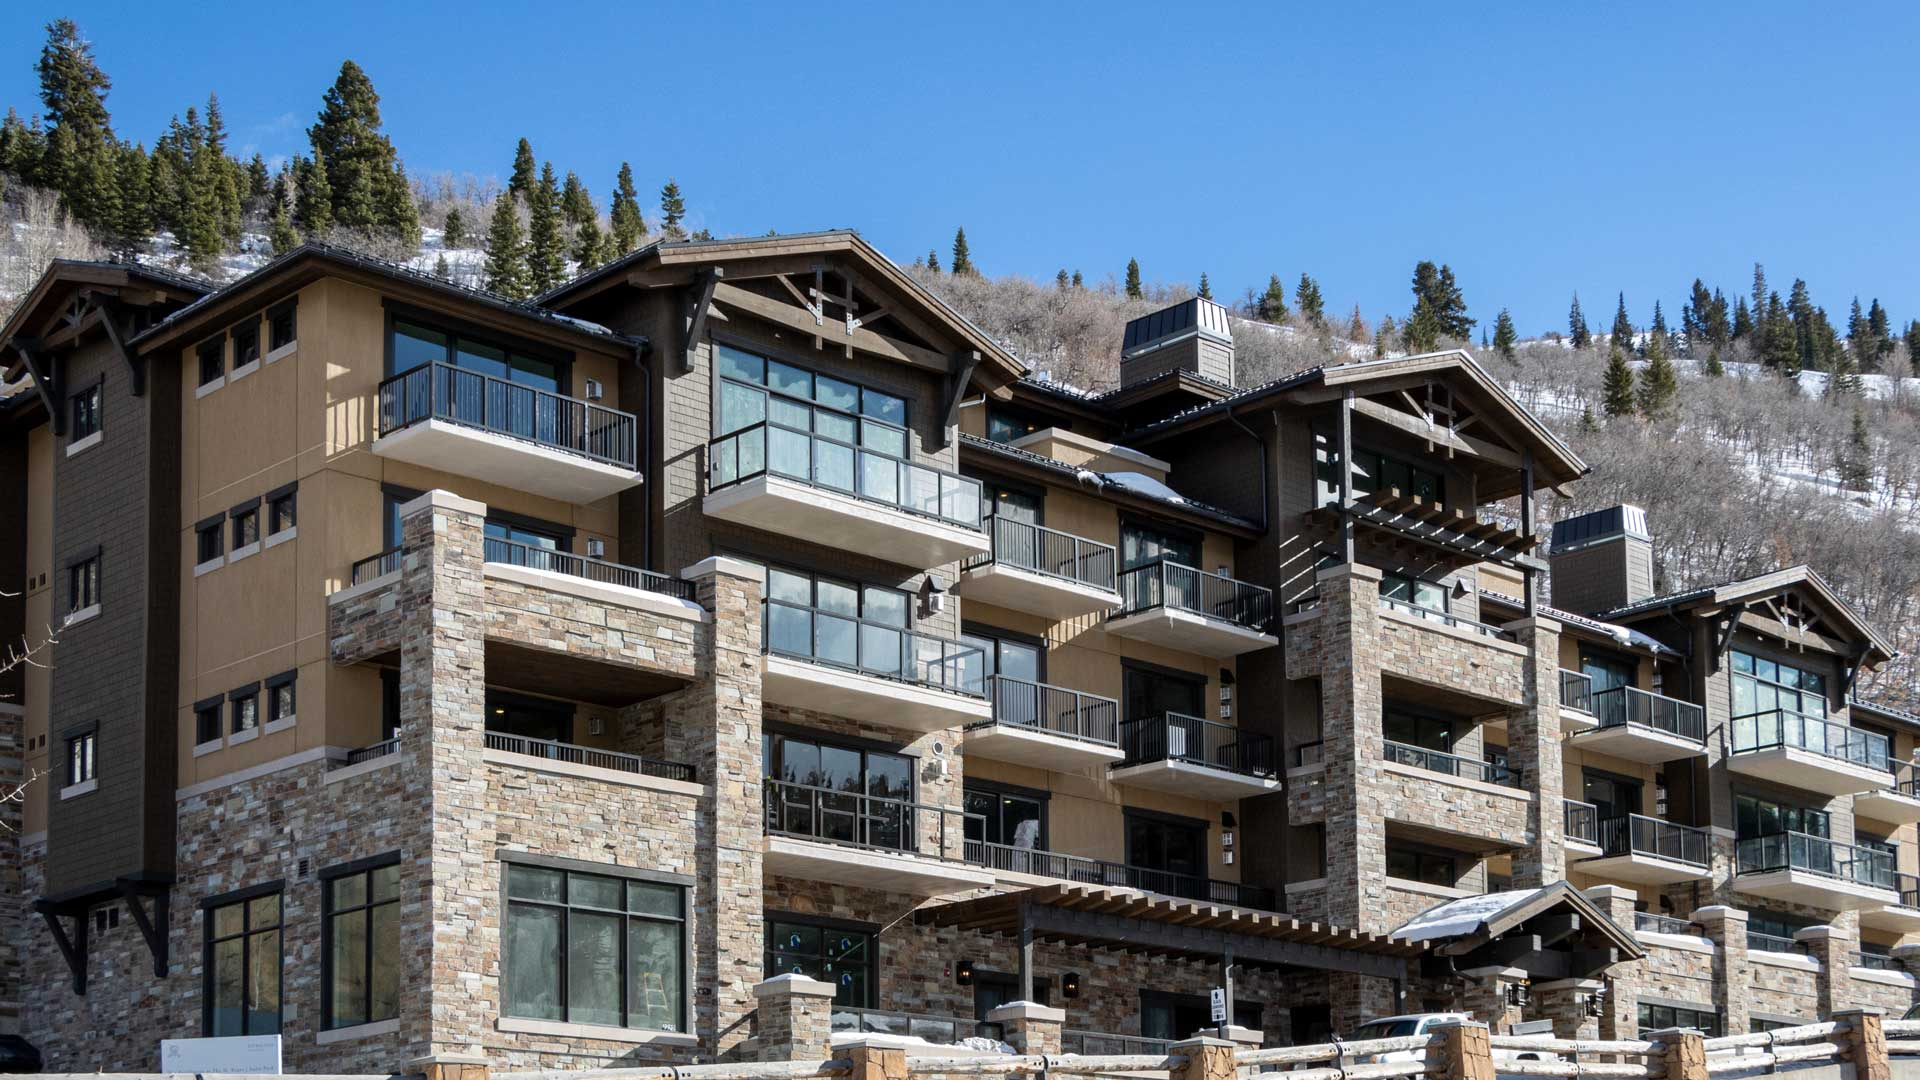 Construction Progress, The Residences at The St. Regis Deer Valley | Snow Park, February 10, 2021